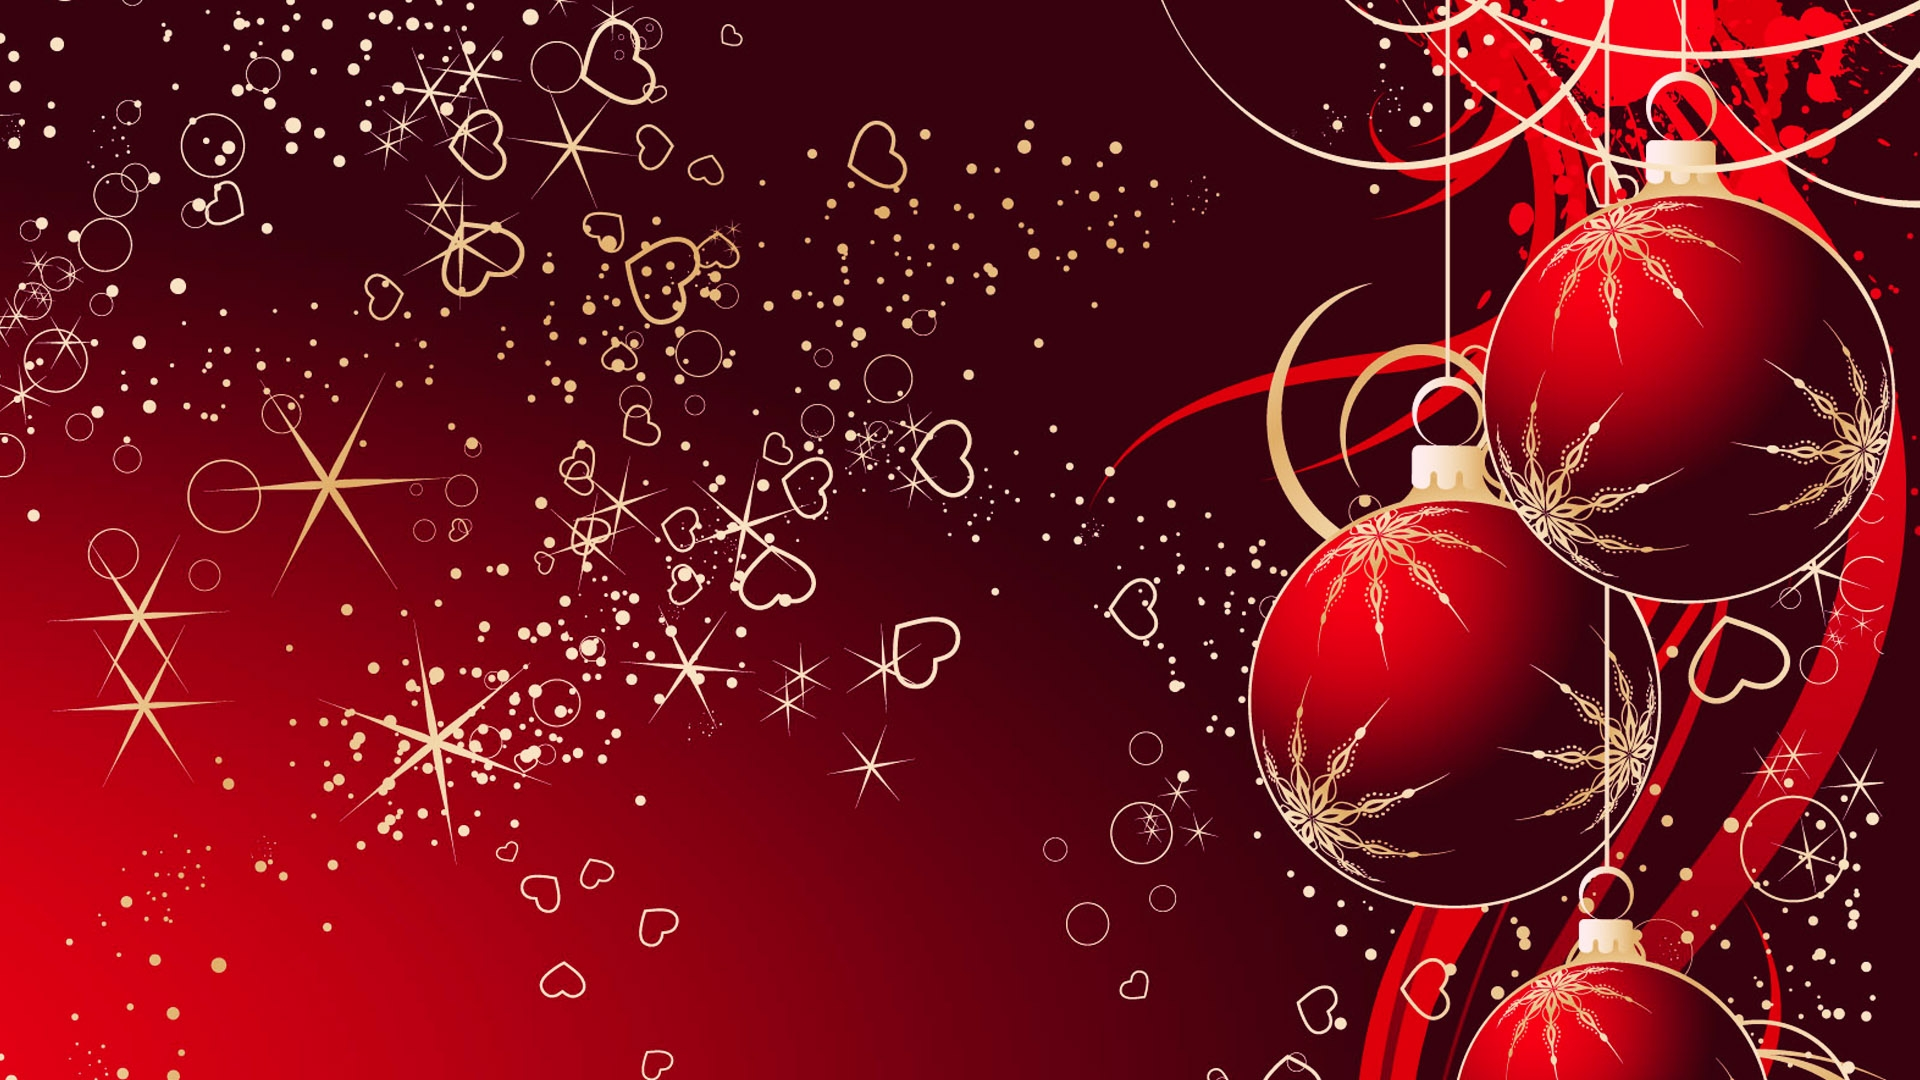 20 Christmas Wallpaper HD For Desktop   InspirationSeekcom 1920x1080